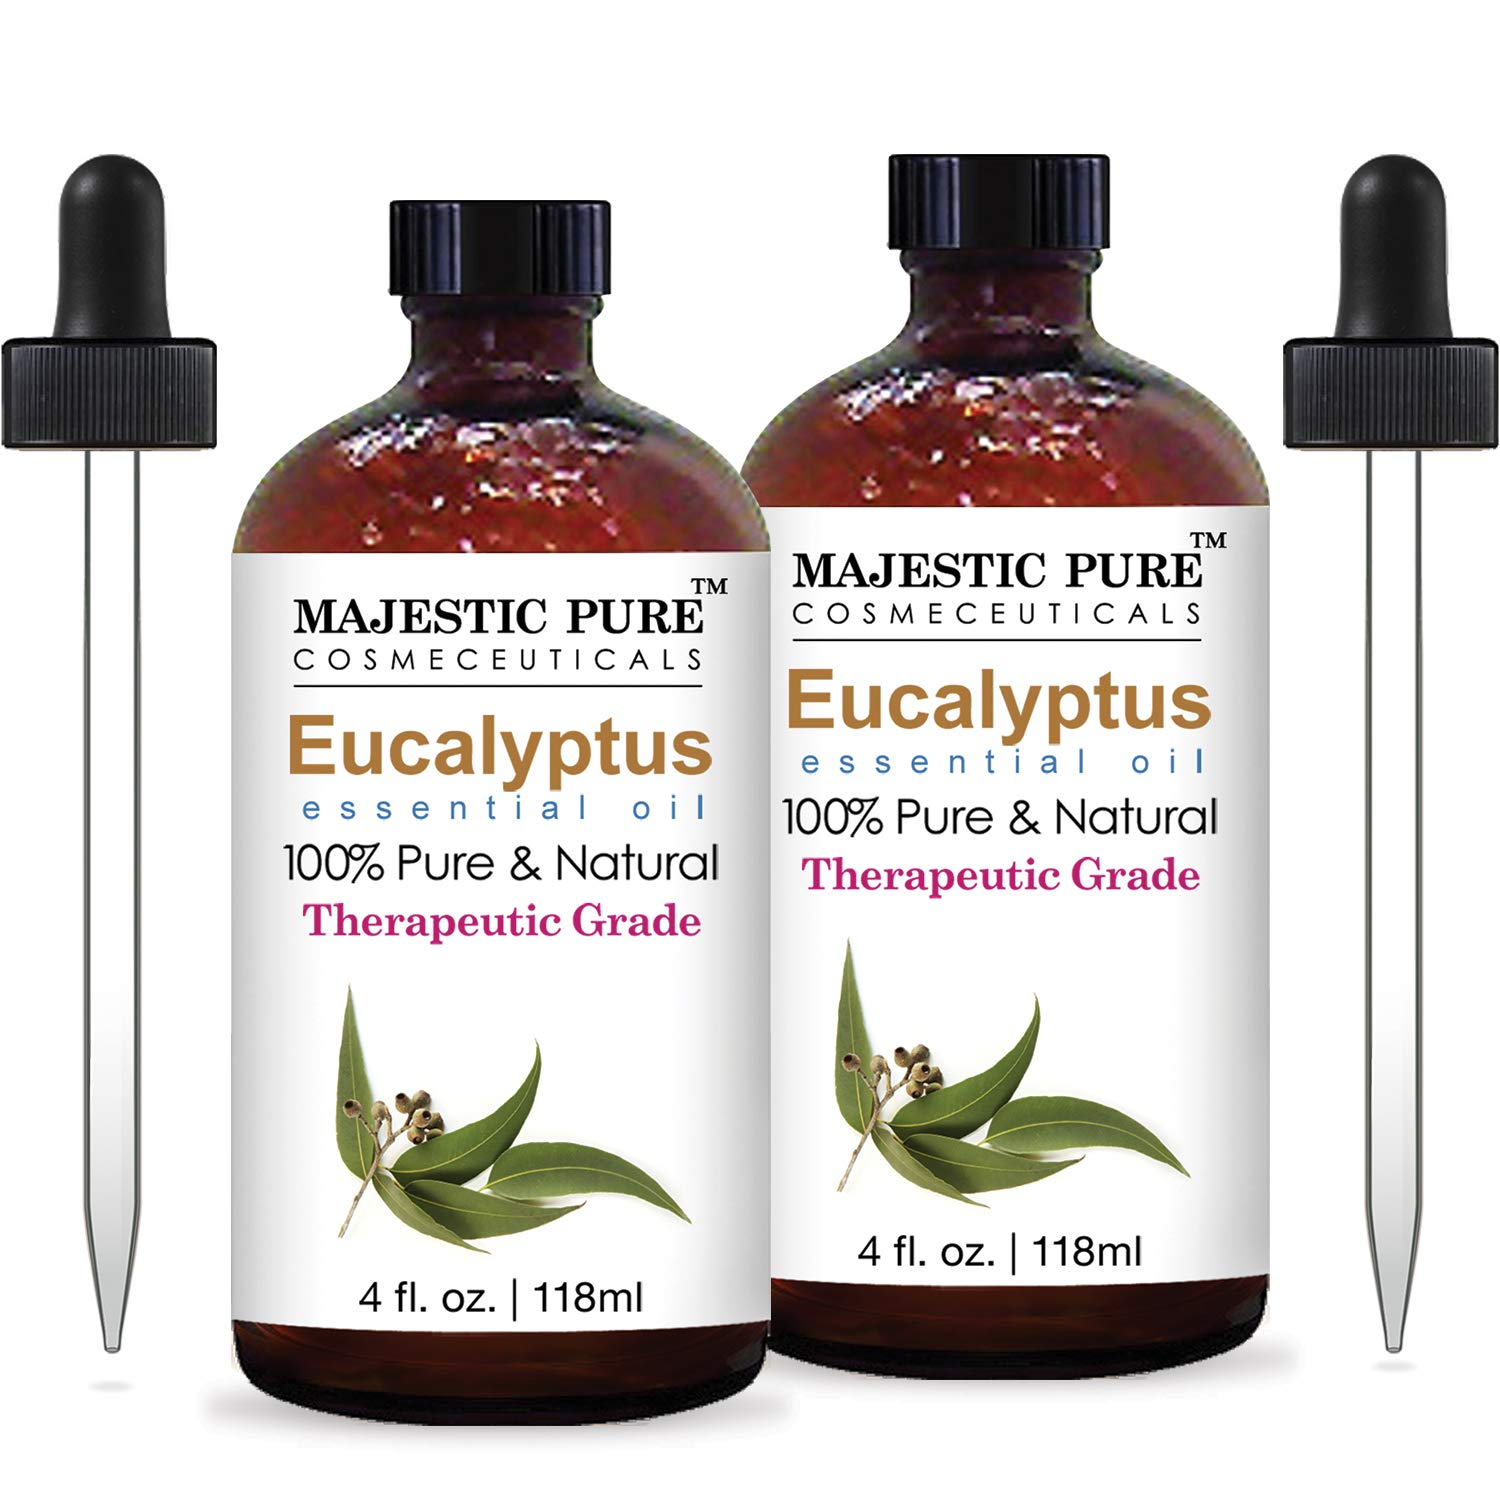 Majestic Pure Eucalyptus Essential Oil, Pure and Natural with Therapeutic Grade, Premium Quality Eucalyptus Oil, Set of 2, 4 Oz